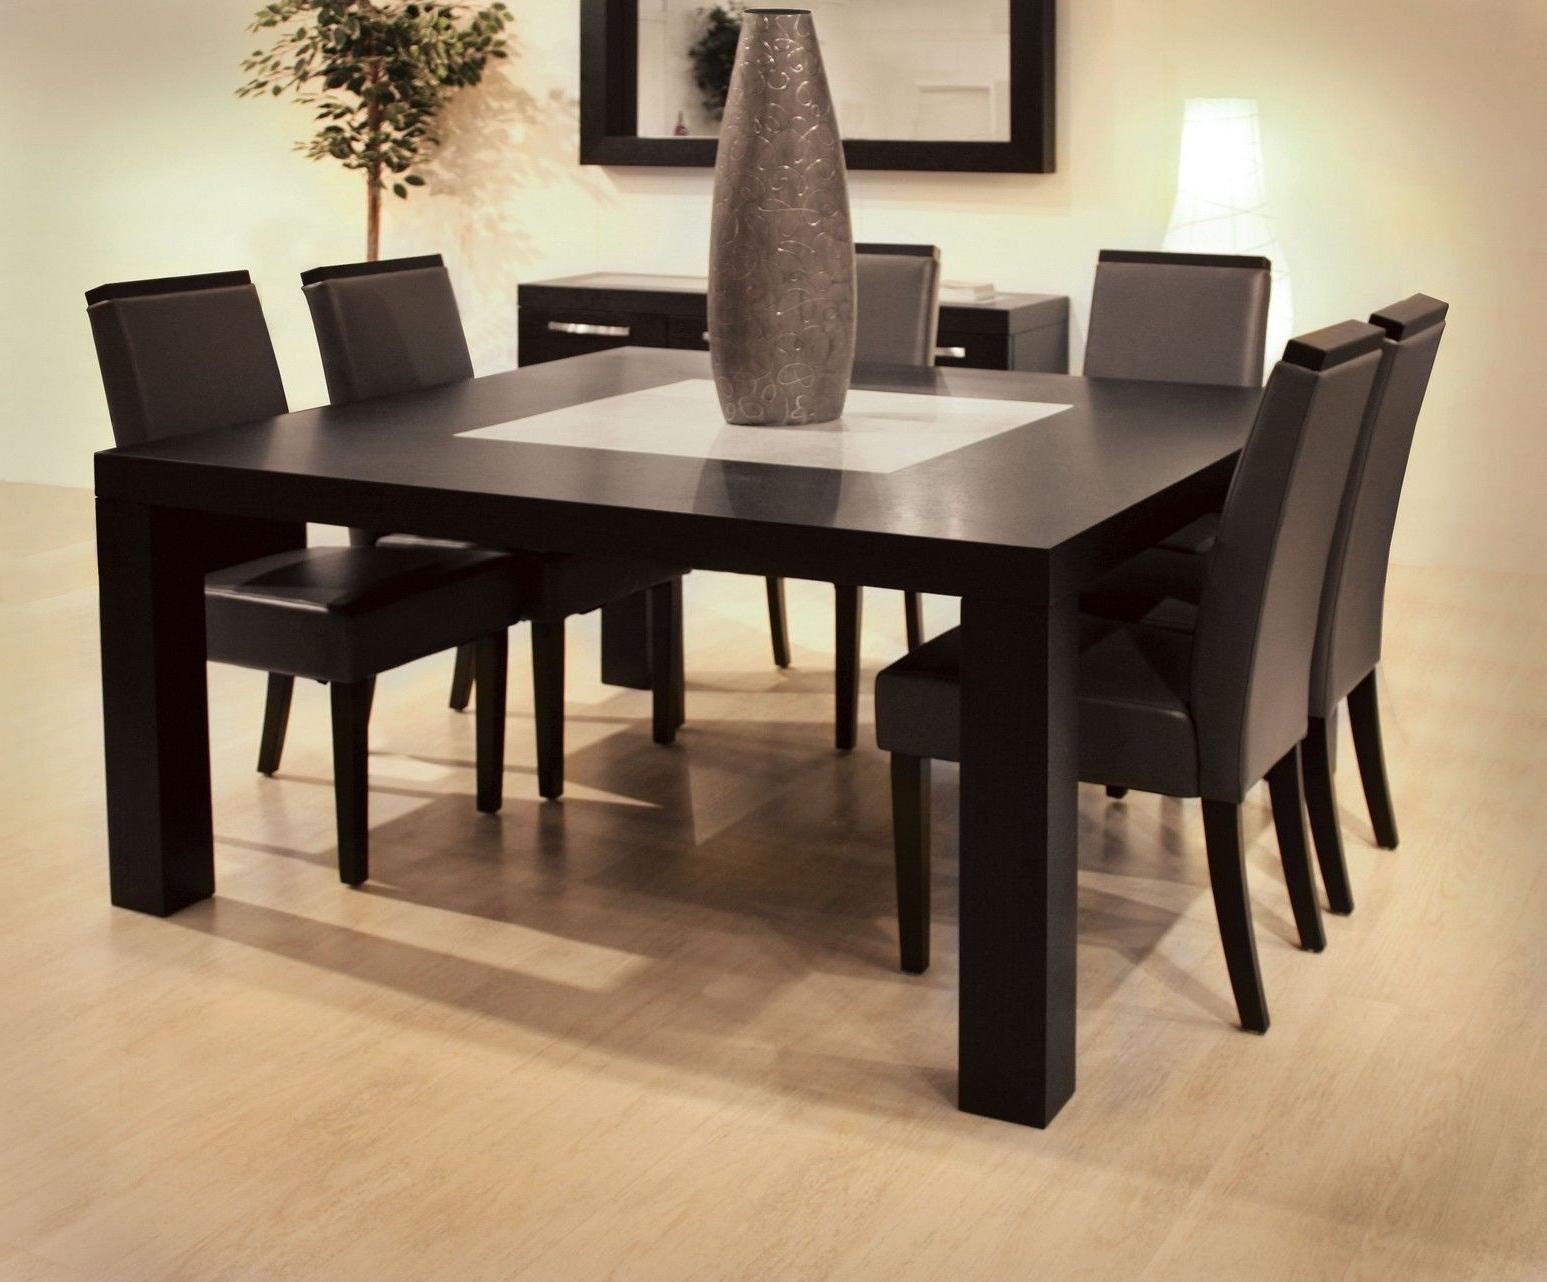 Dark Wood Square Dining Tables With Regard To 2017 Finding The Perfect Kitchen Table For Your Needs – Kitchen Ideas (Gallery 5 of 25)